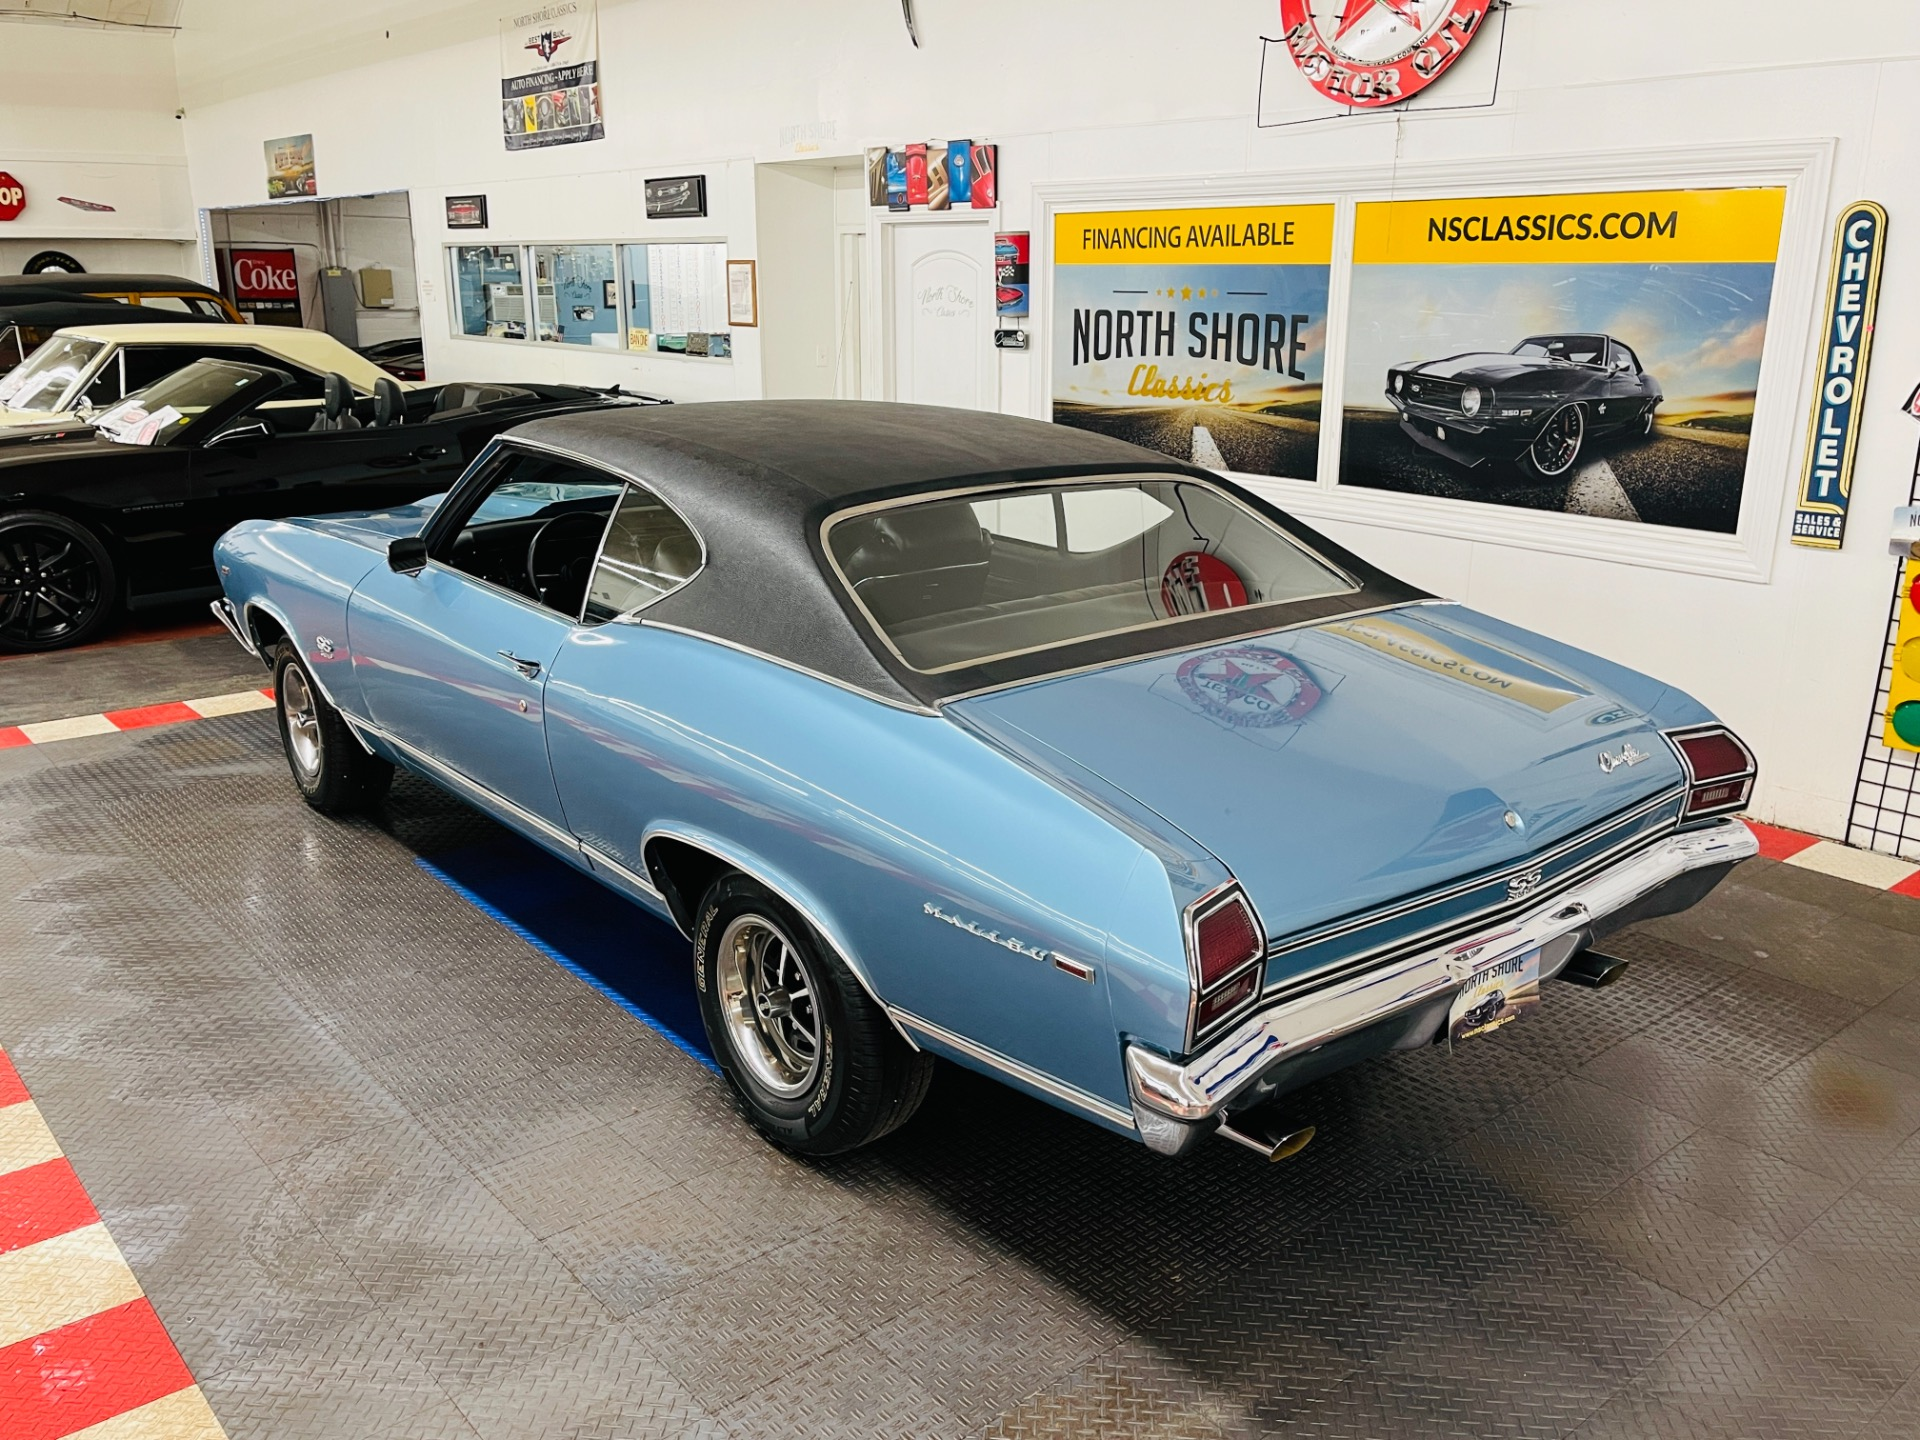 Used 1969 Chevrolet Chevelle - 396 BBC ENGINE - AUTO TRANS - CLEAN SOUTHERN BODY - SEE VIDEO -   Mundelein, IL